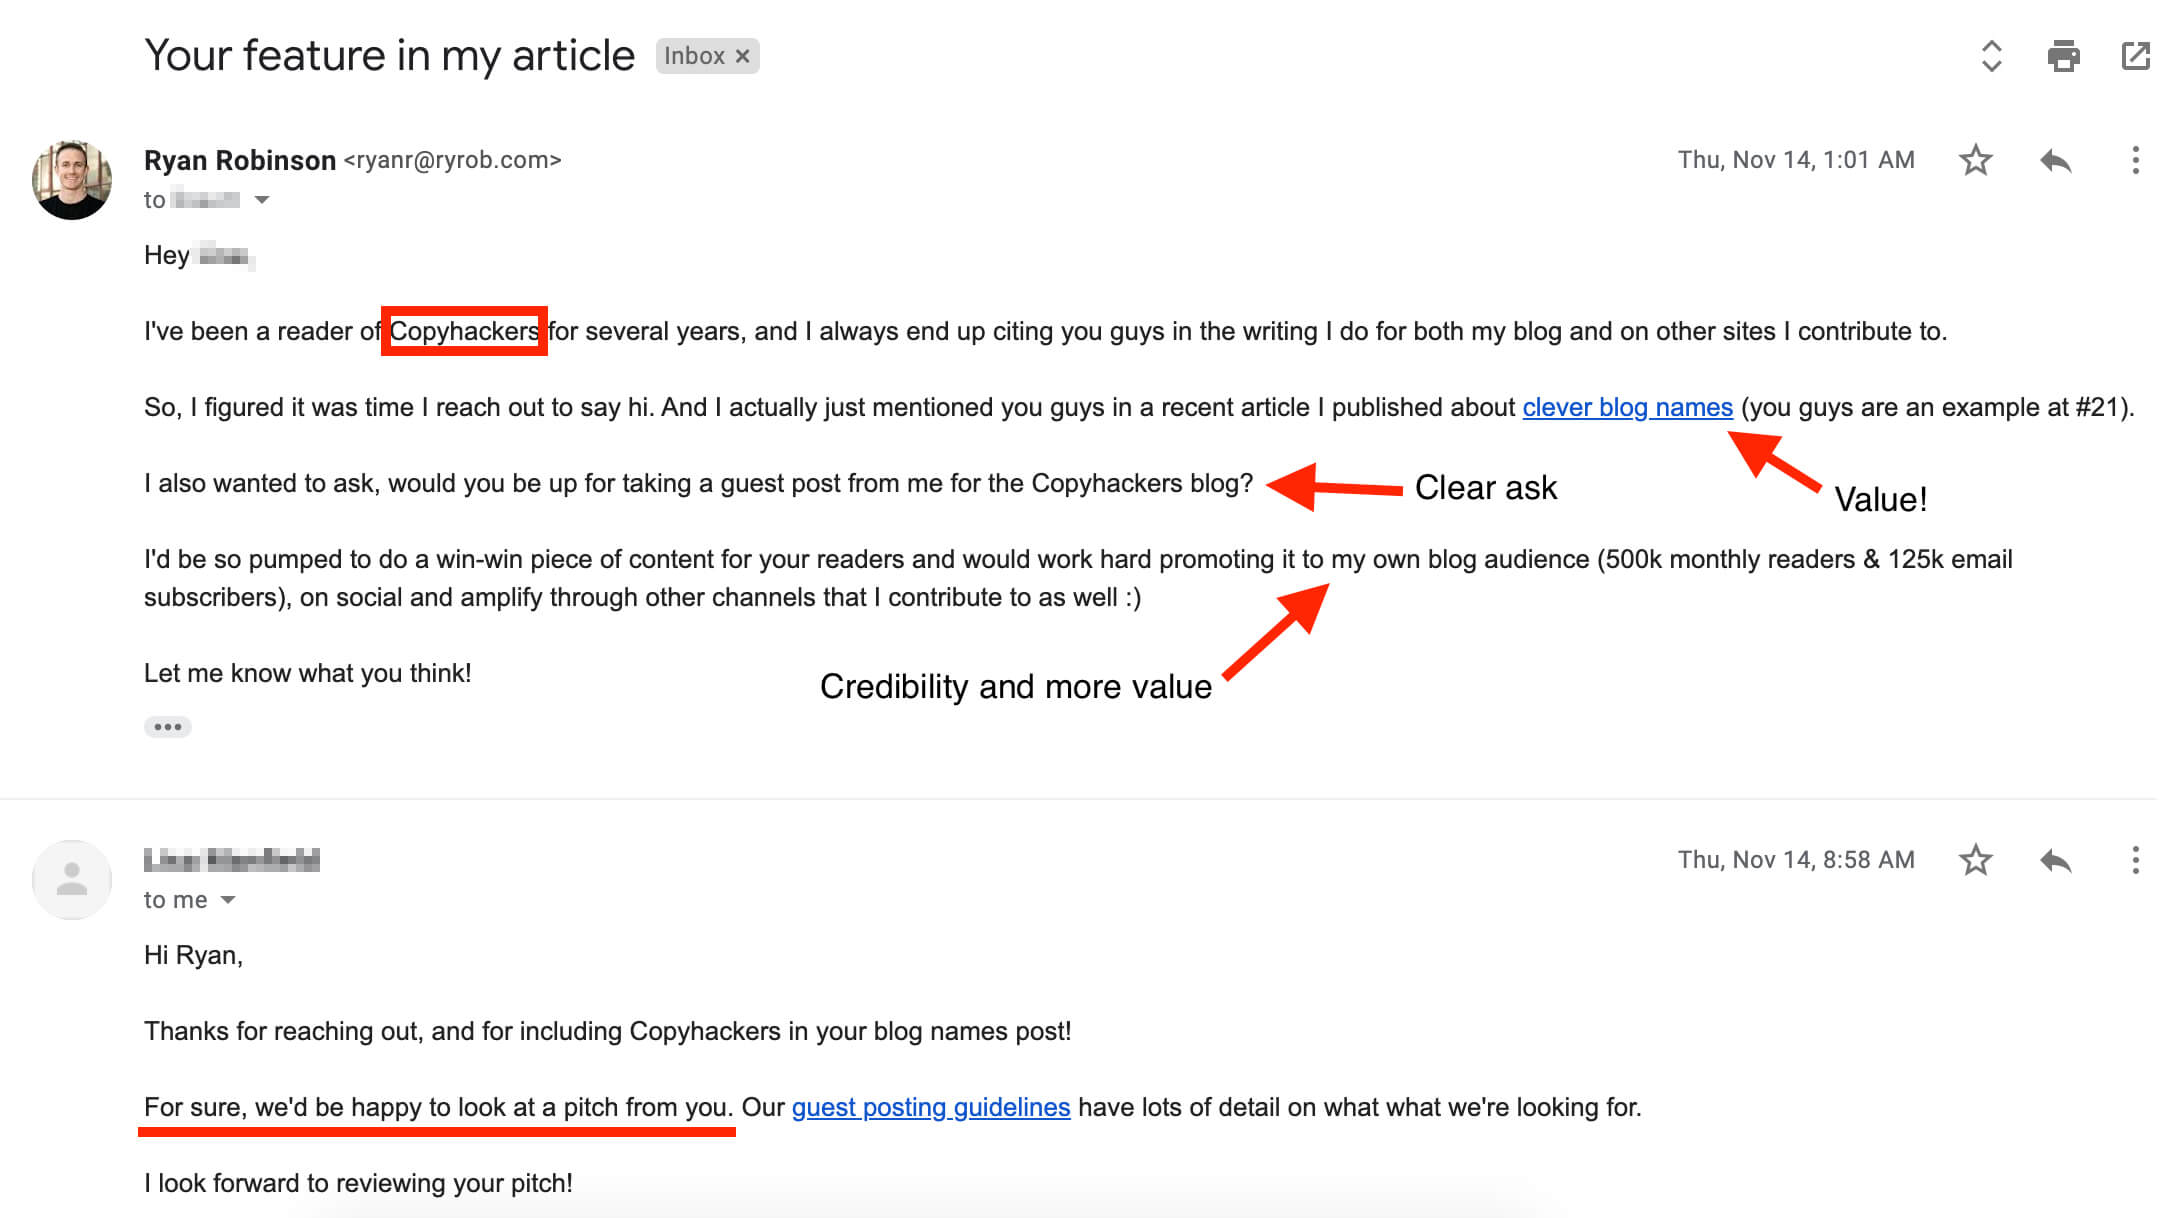 Copyhackers blog outreach email template example and screenshot